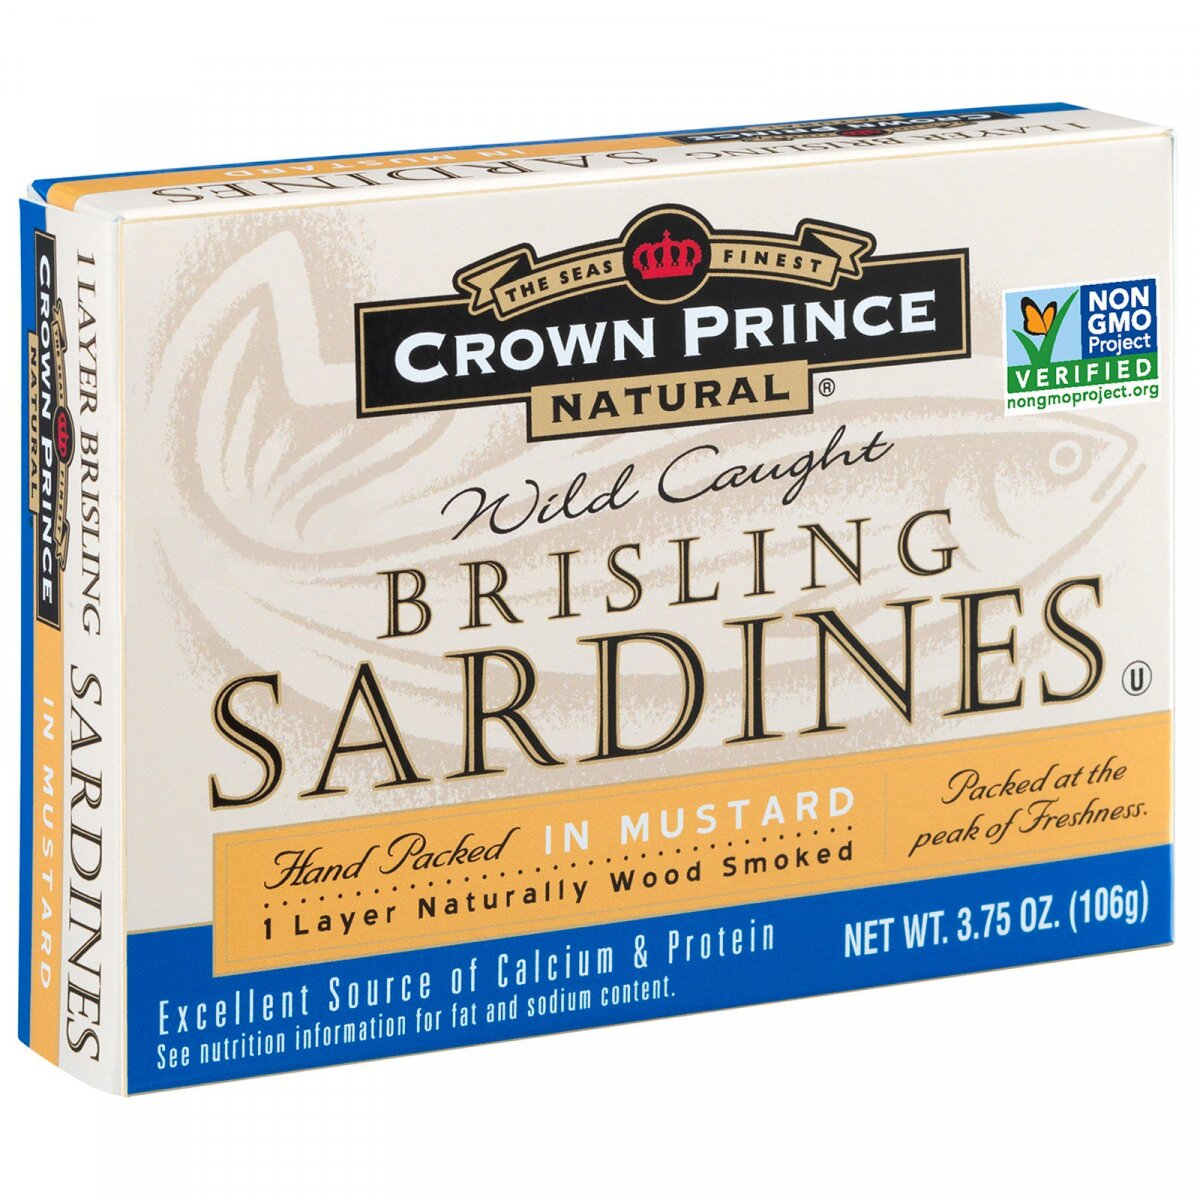 Брислинг сардины, горчица, Brisling Sardines, In Mustard, Crown Prince Natural, 106 г